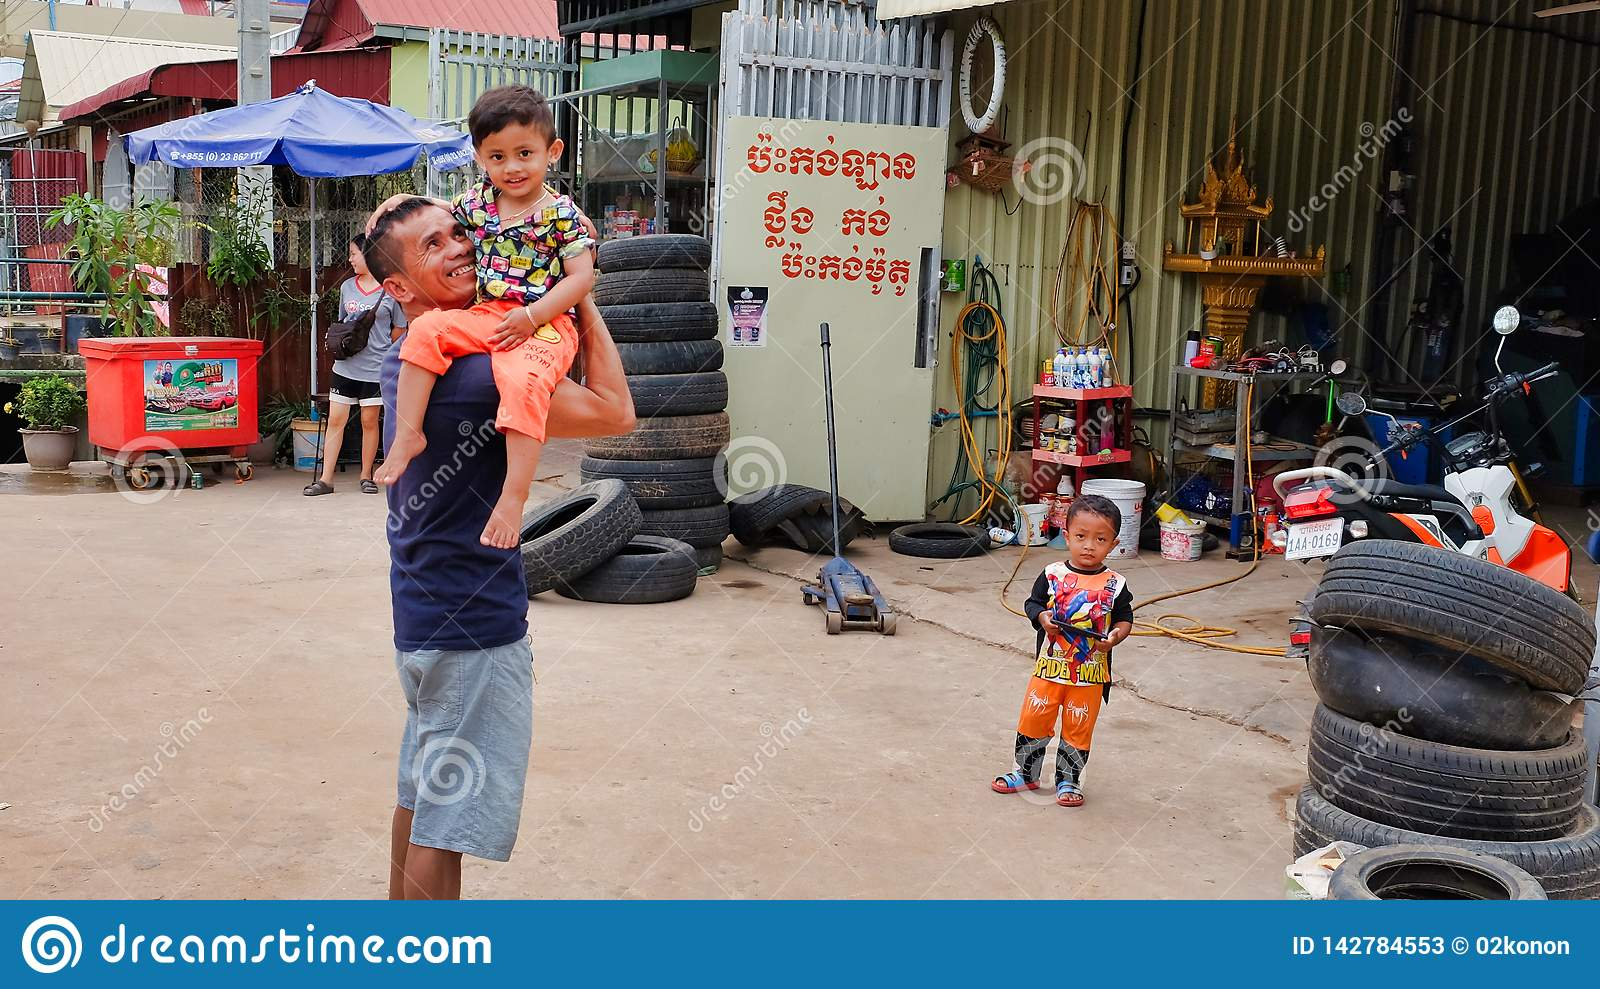 A man with a child in his arms near the tire shop, slums of Asia, residents of poor areas of the